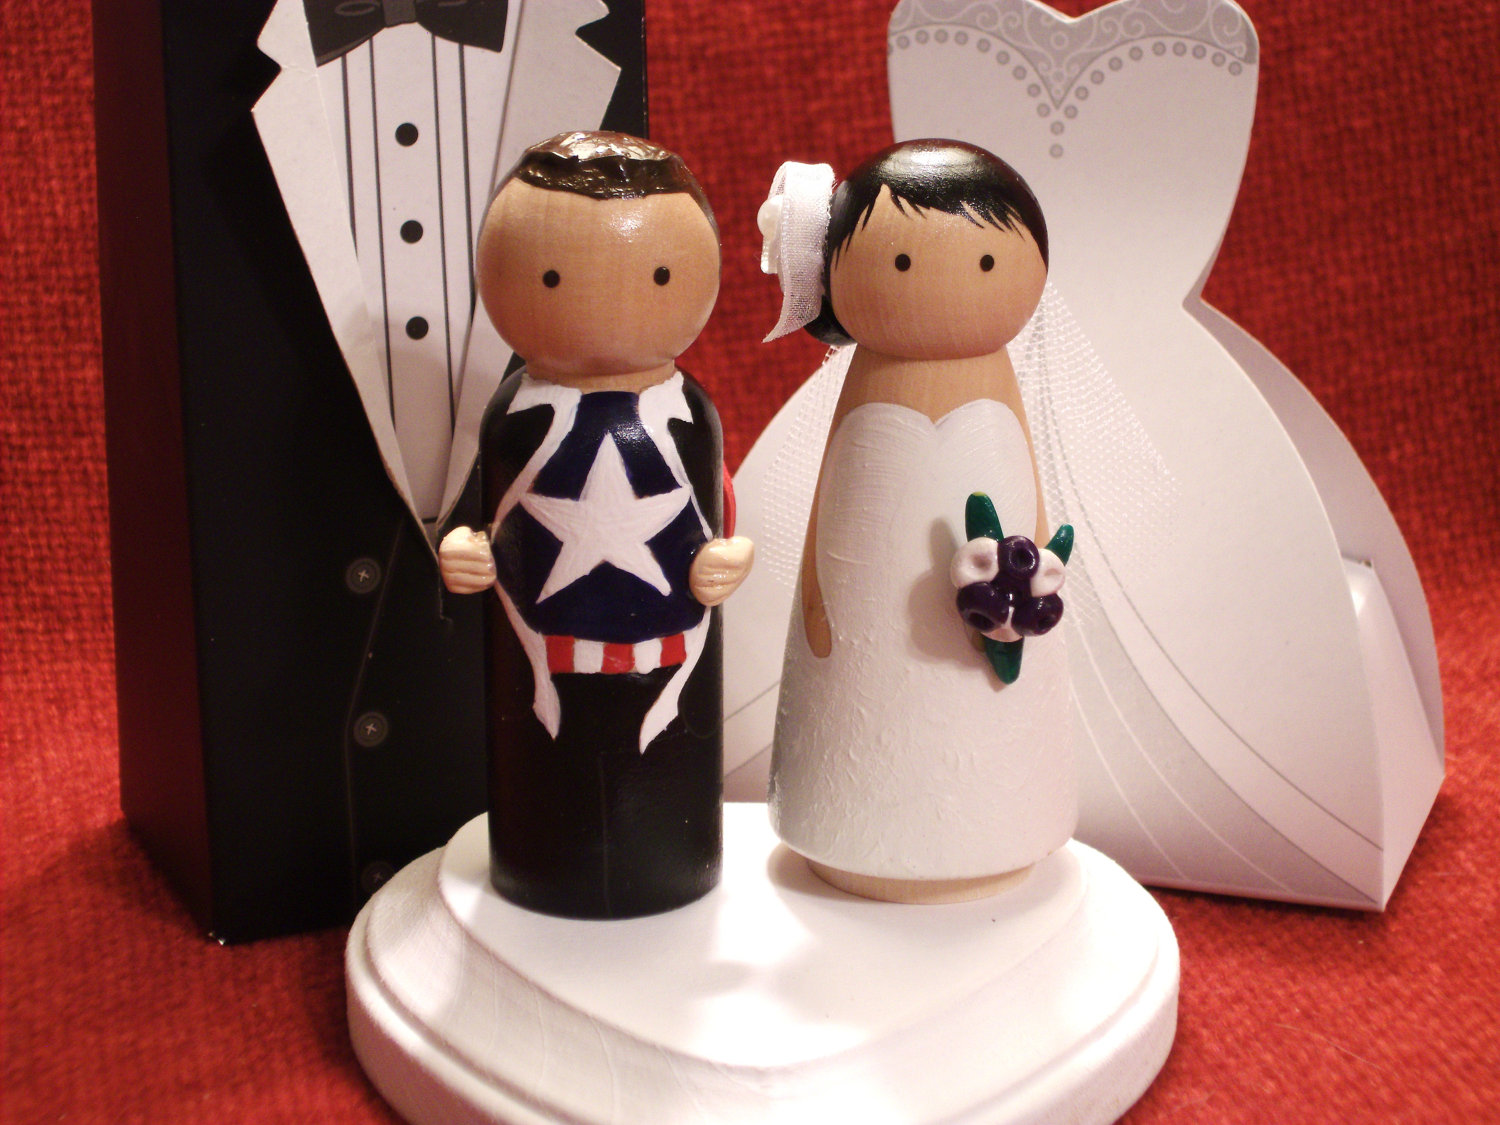 Adorable-wedding-cake-toppers-handmade-wedding-etsy-superhero-groom.original